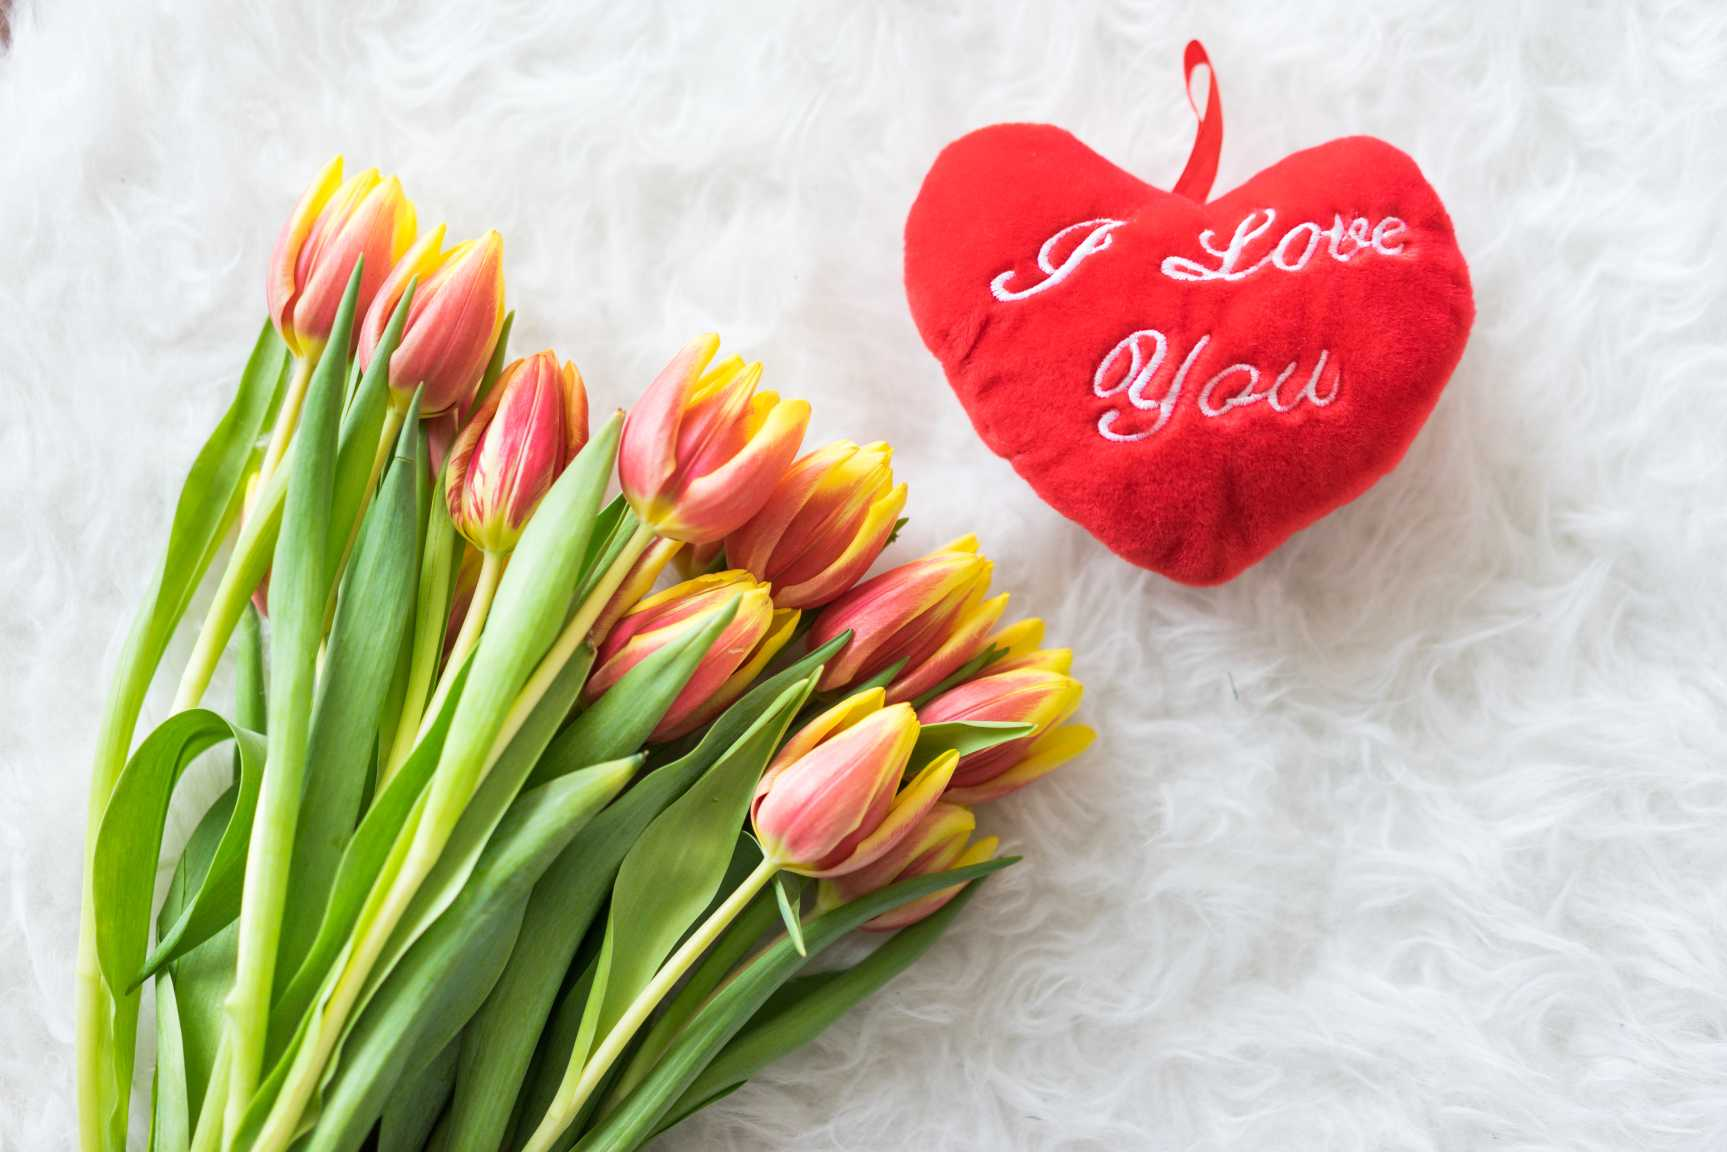 kees nelis tulips with plush i love you heart free stock photos picjumbo.com  - Valentýnské fotografie zdarma – picjumbo.com